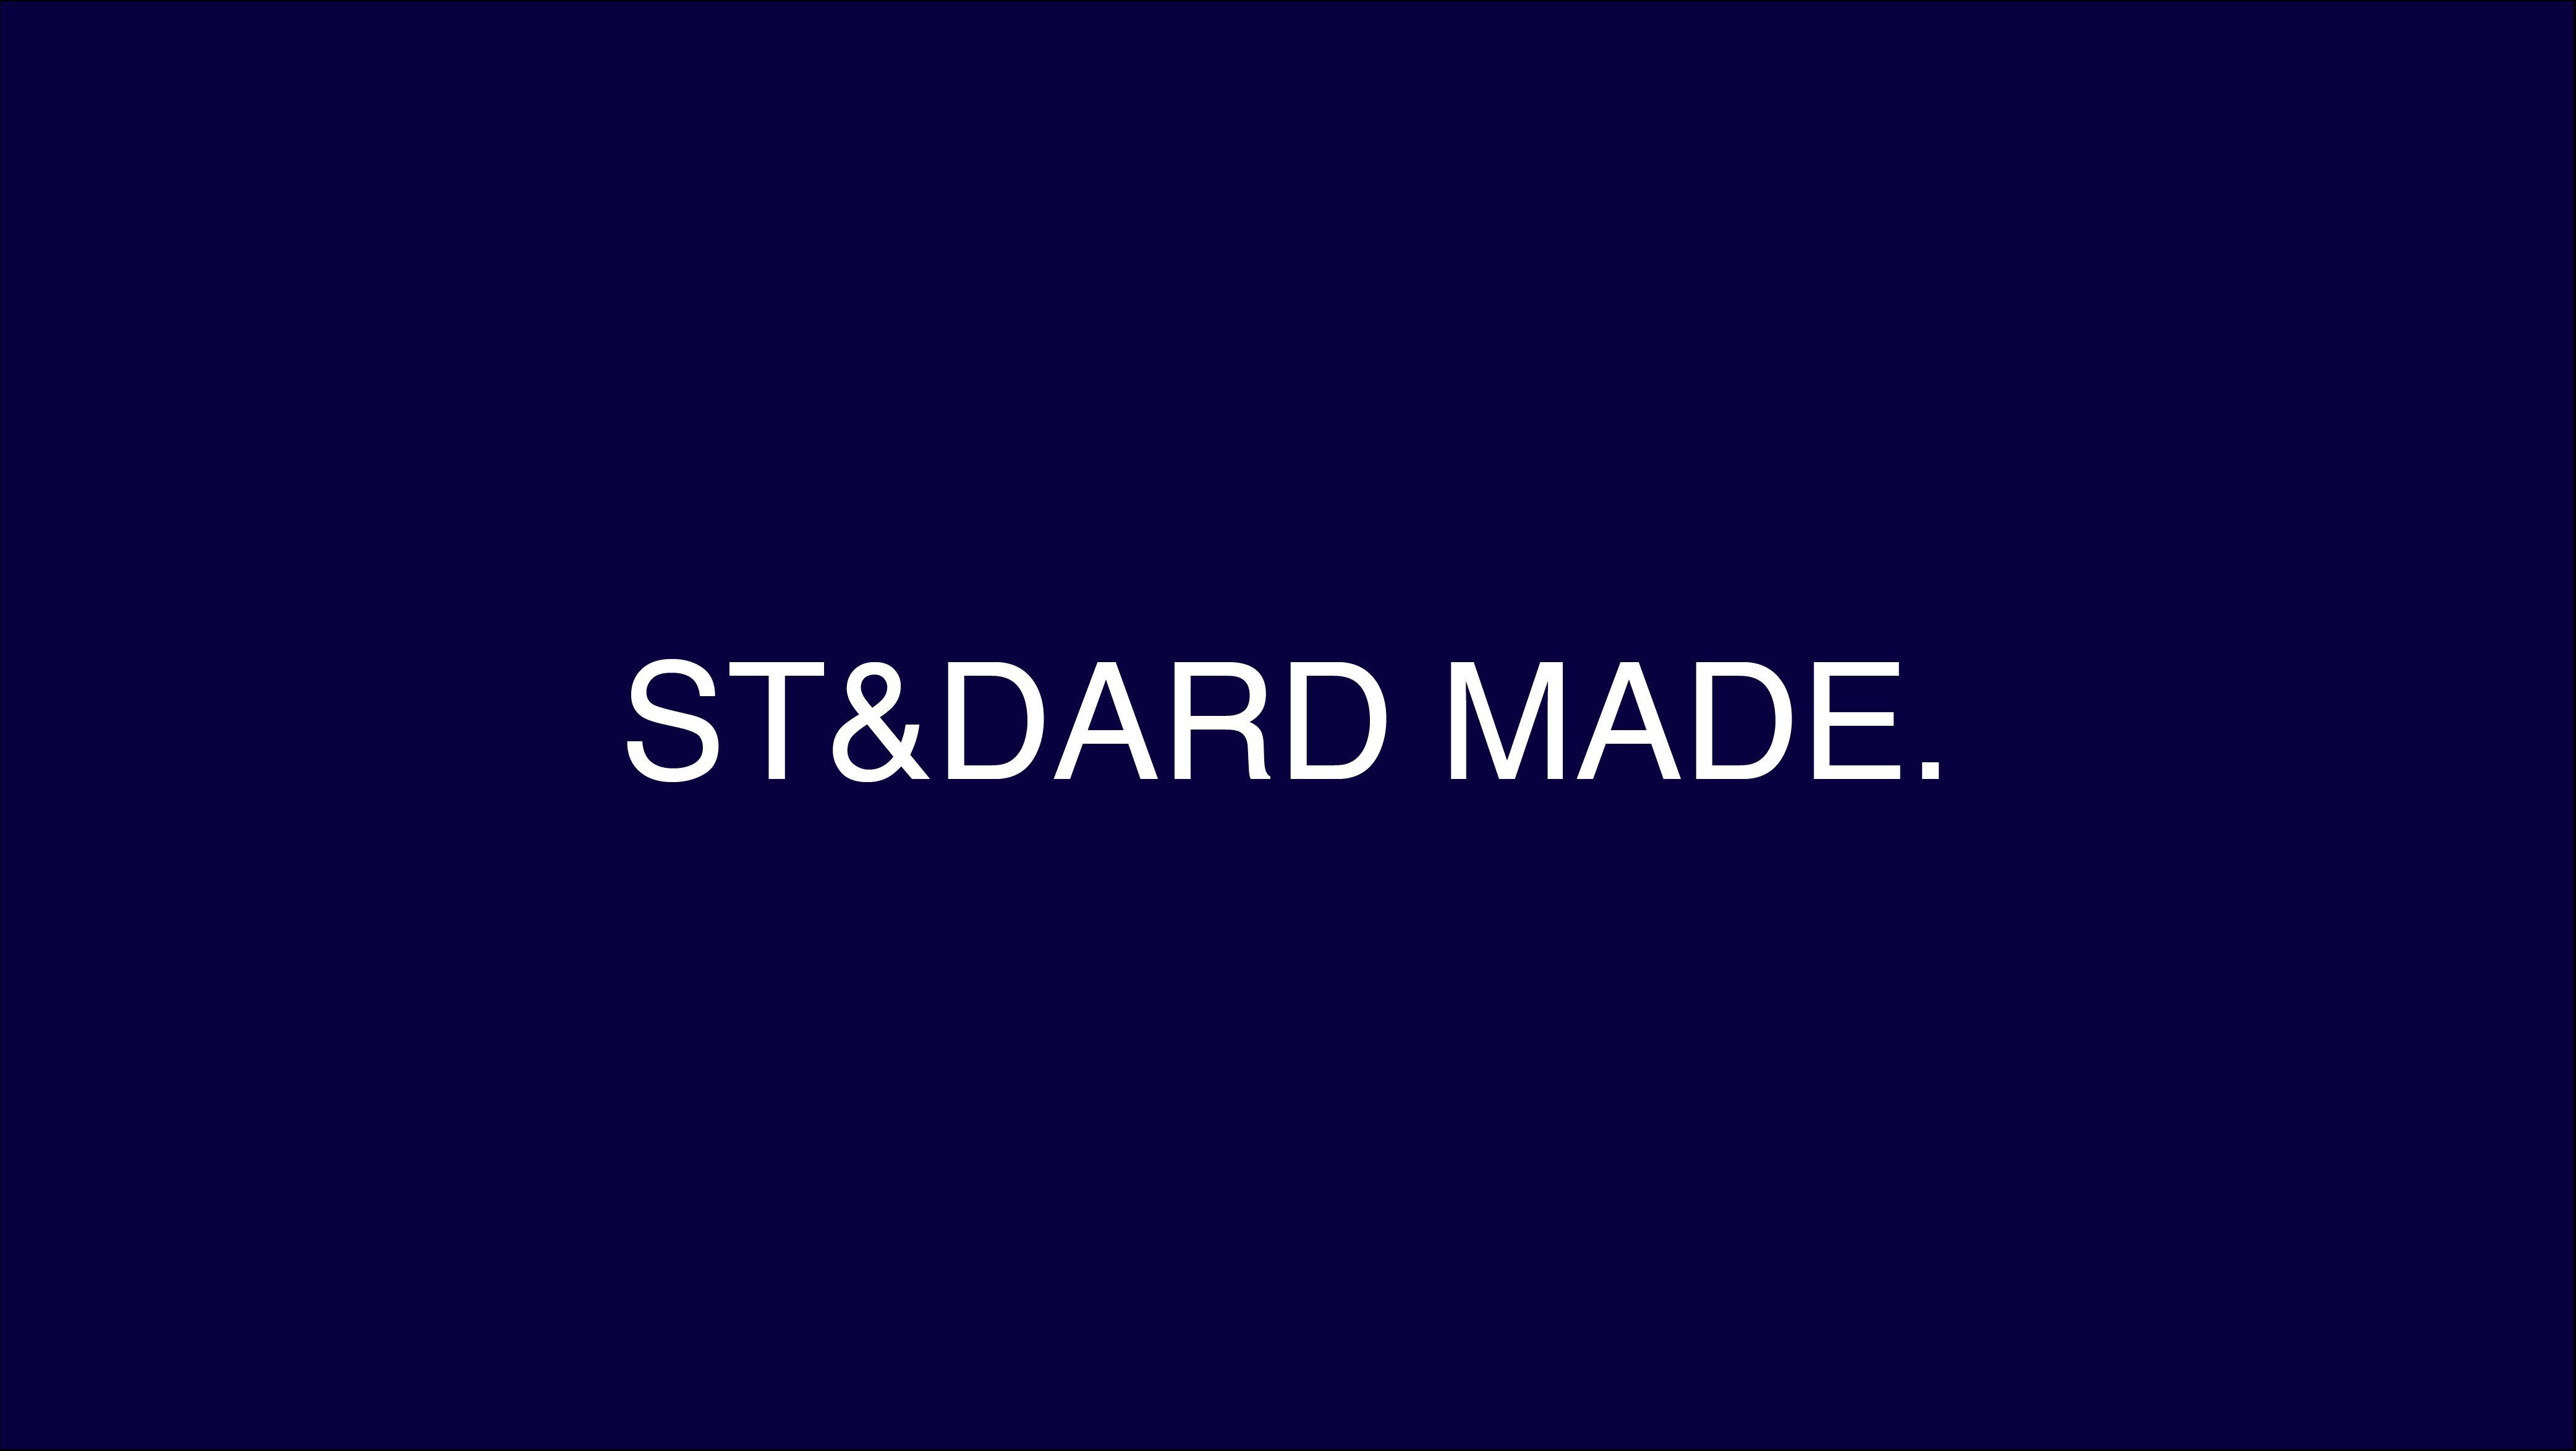 ST&DARD MADE. Online Store